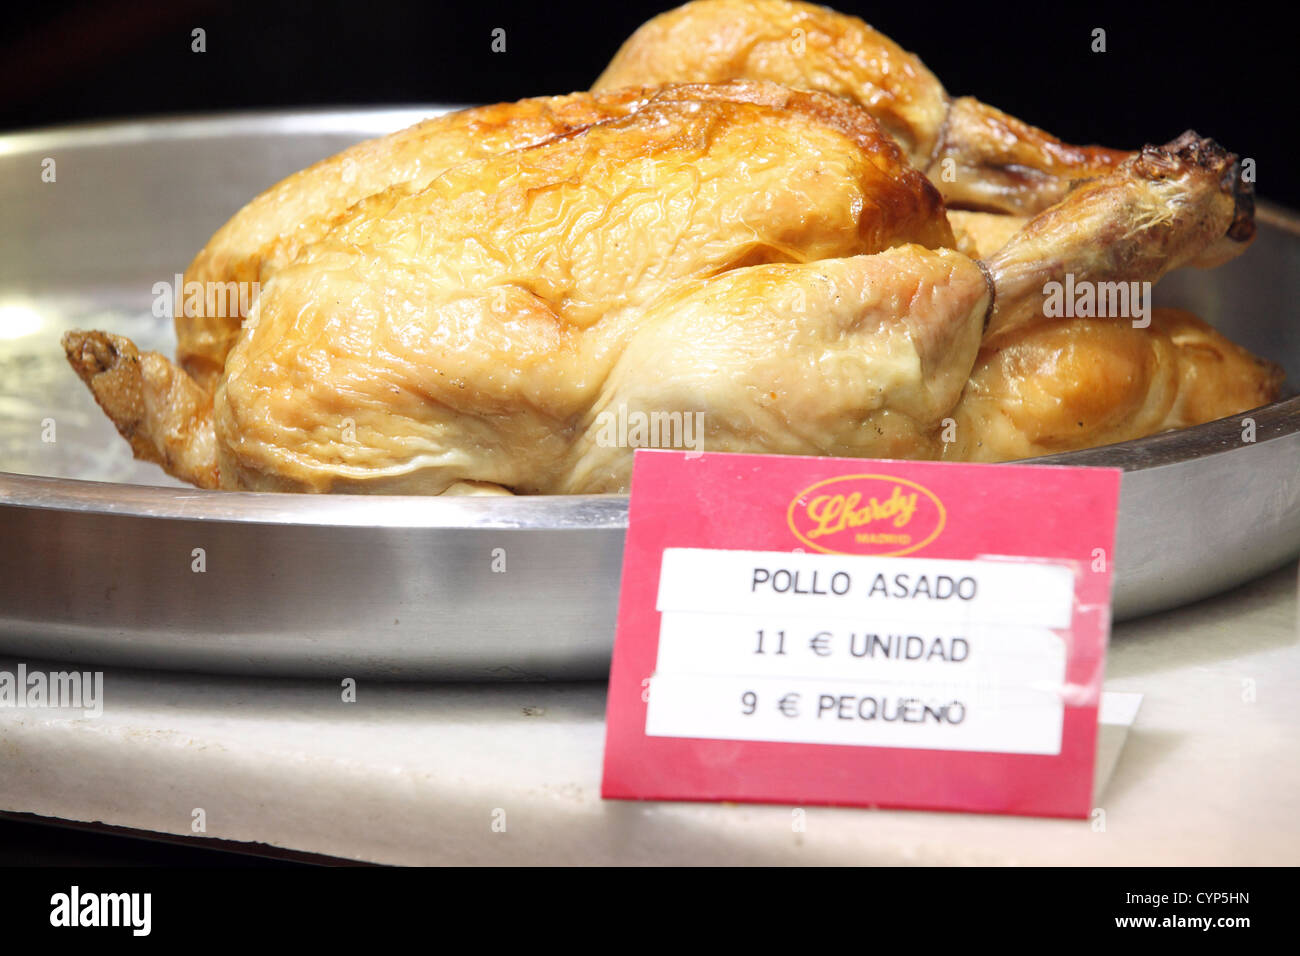 Whole roast chicken for sale in Spanish shop window, price